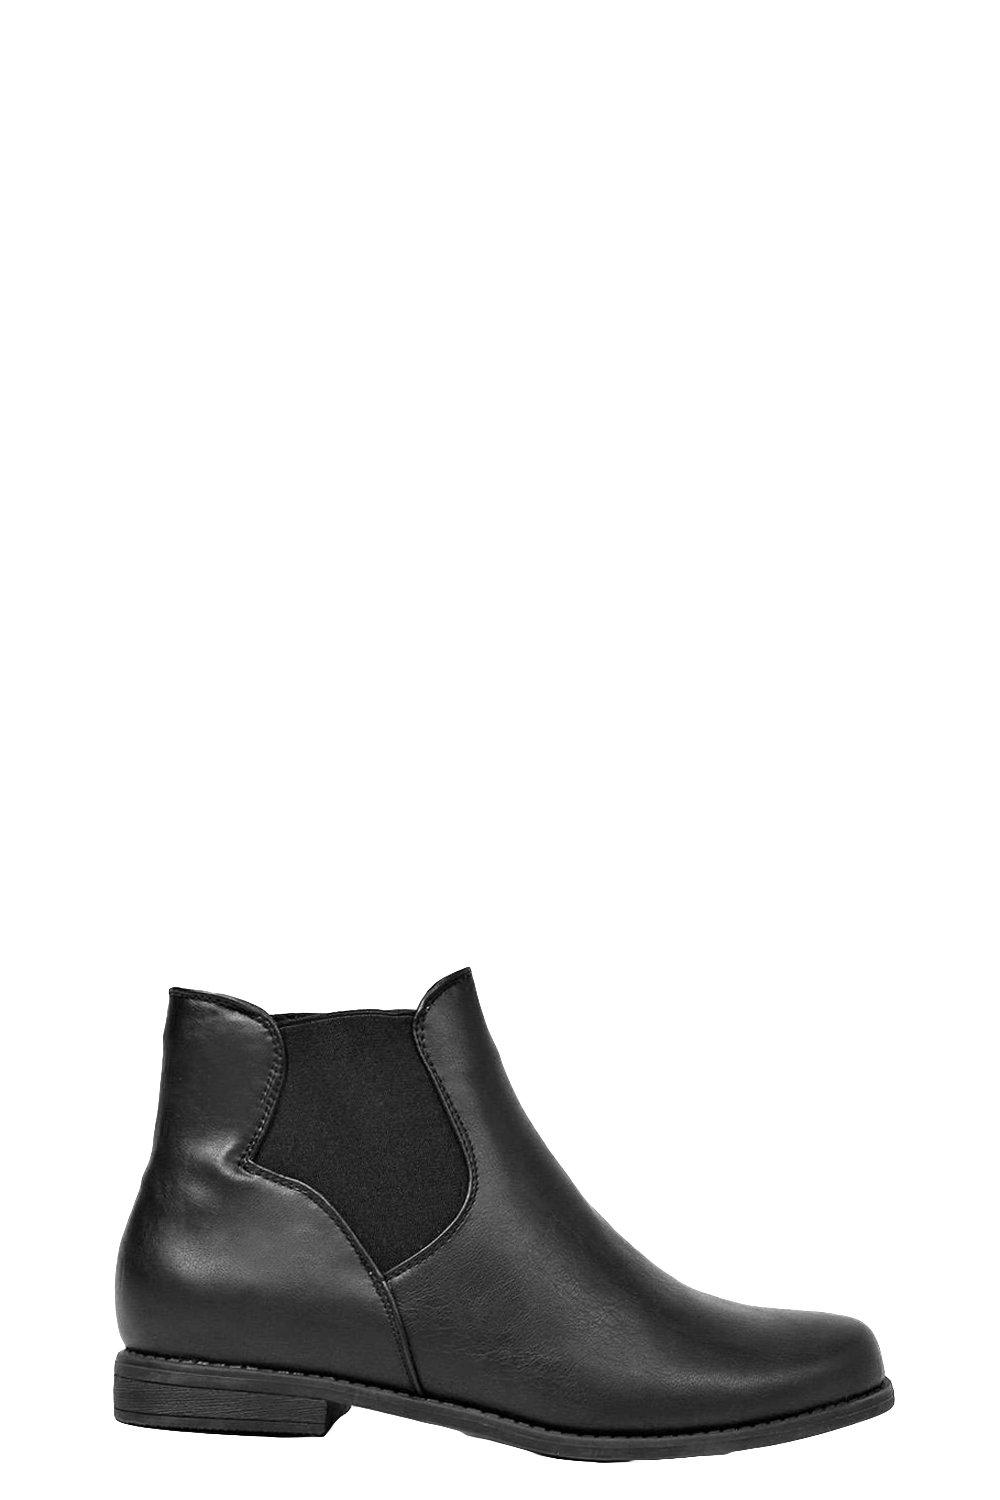 Saffy Pull On Elastic Gusset Chelsea Boot